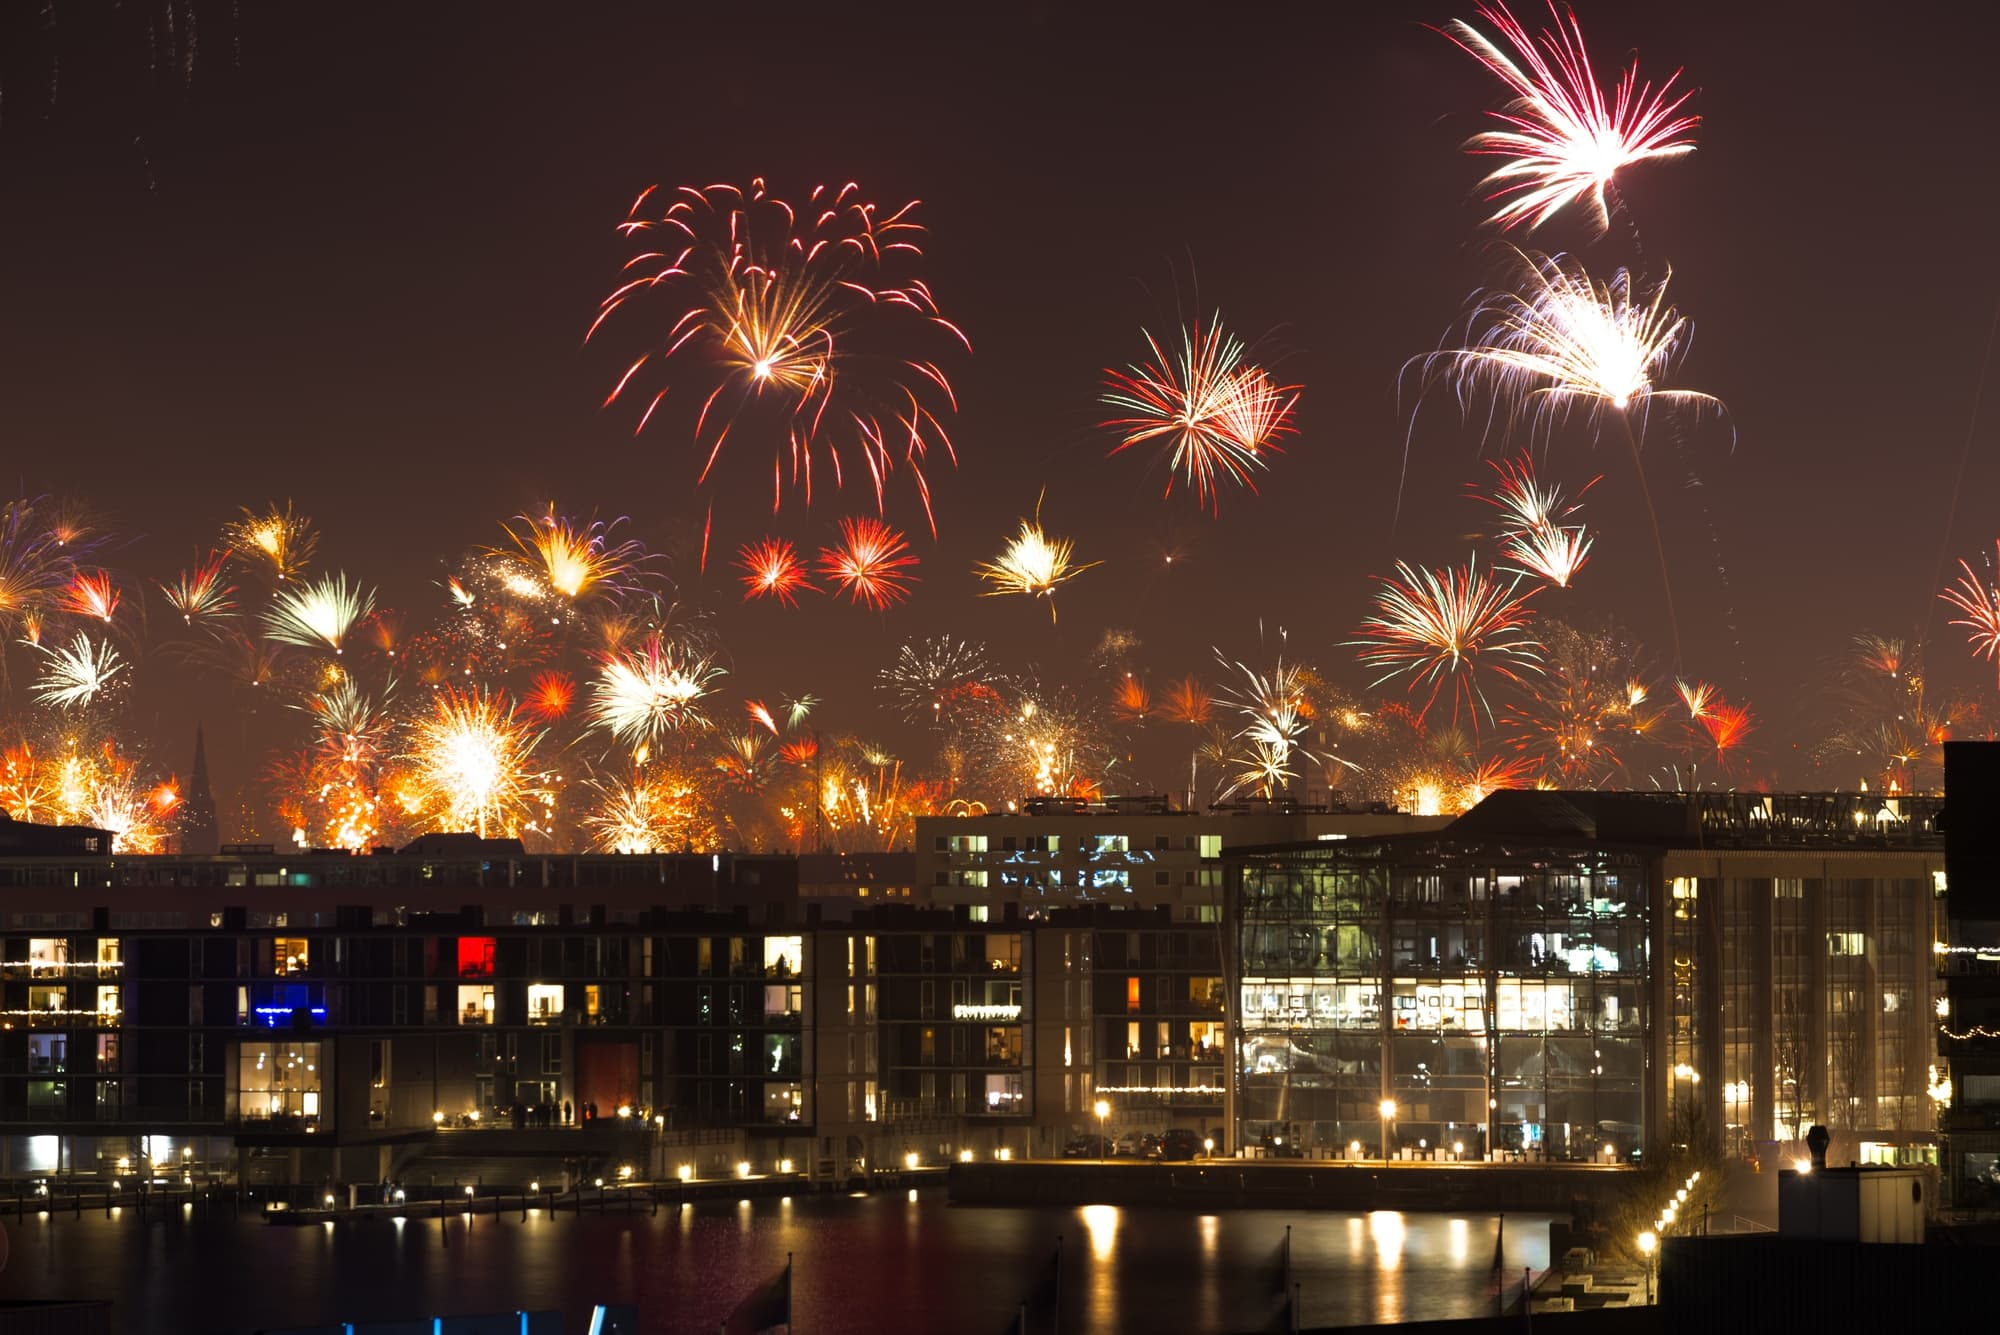 Fireworks in Copenhagen Denmark ~ Fun New Year's Eve Traditions from Europe